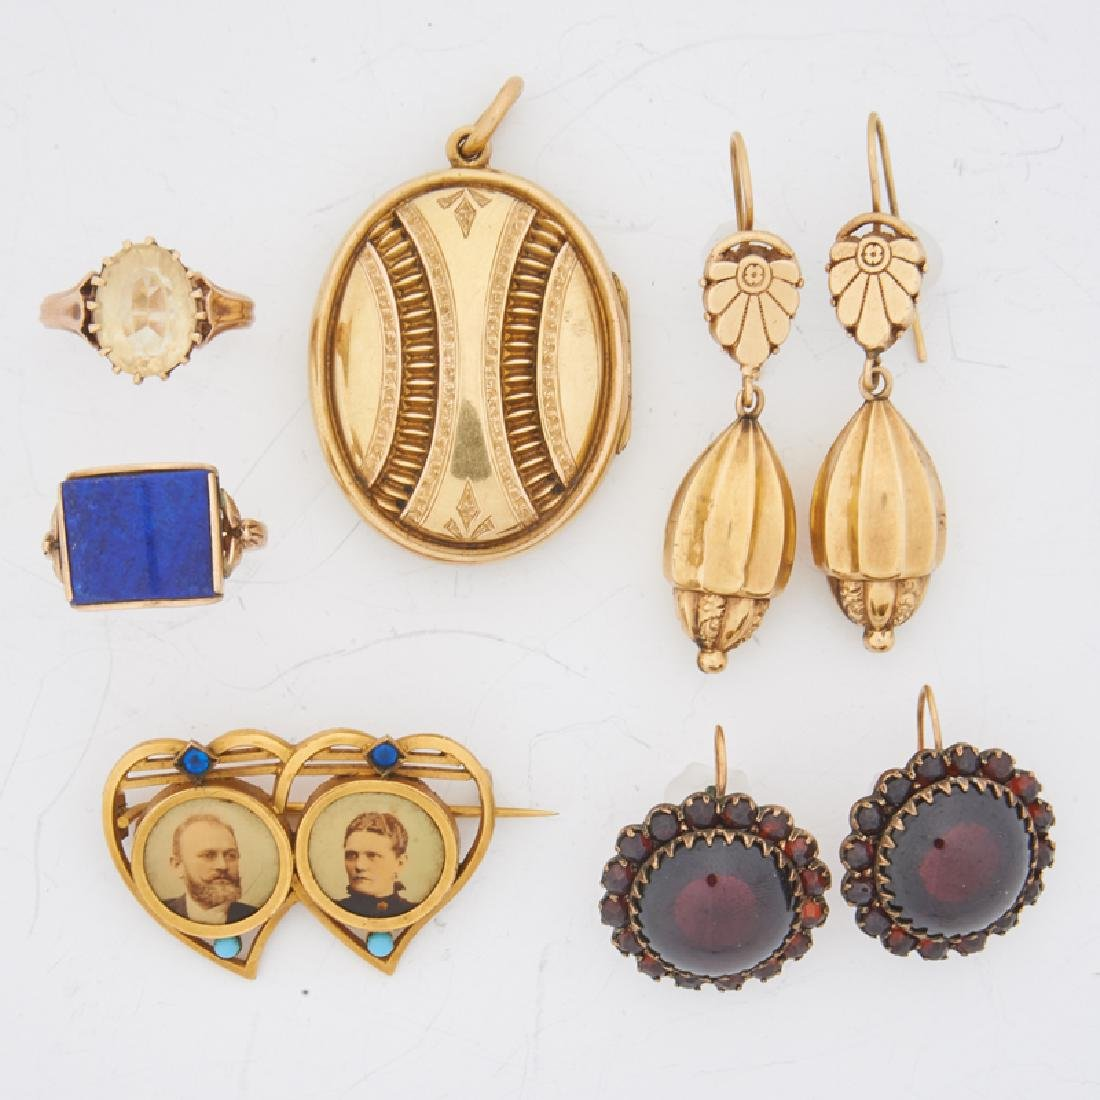 GROUP OF VICTORIAN YELLOW GOLD JEWELRY